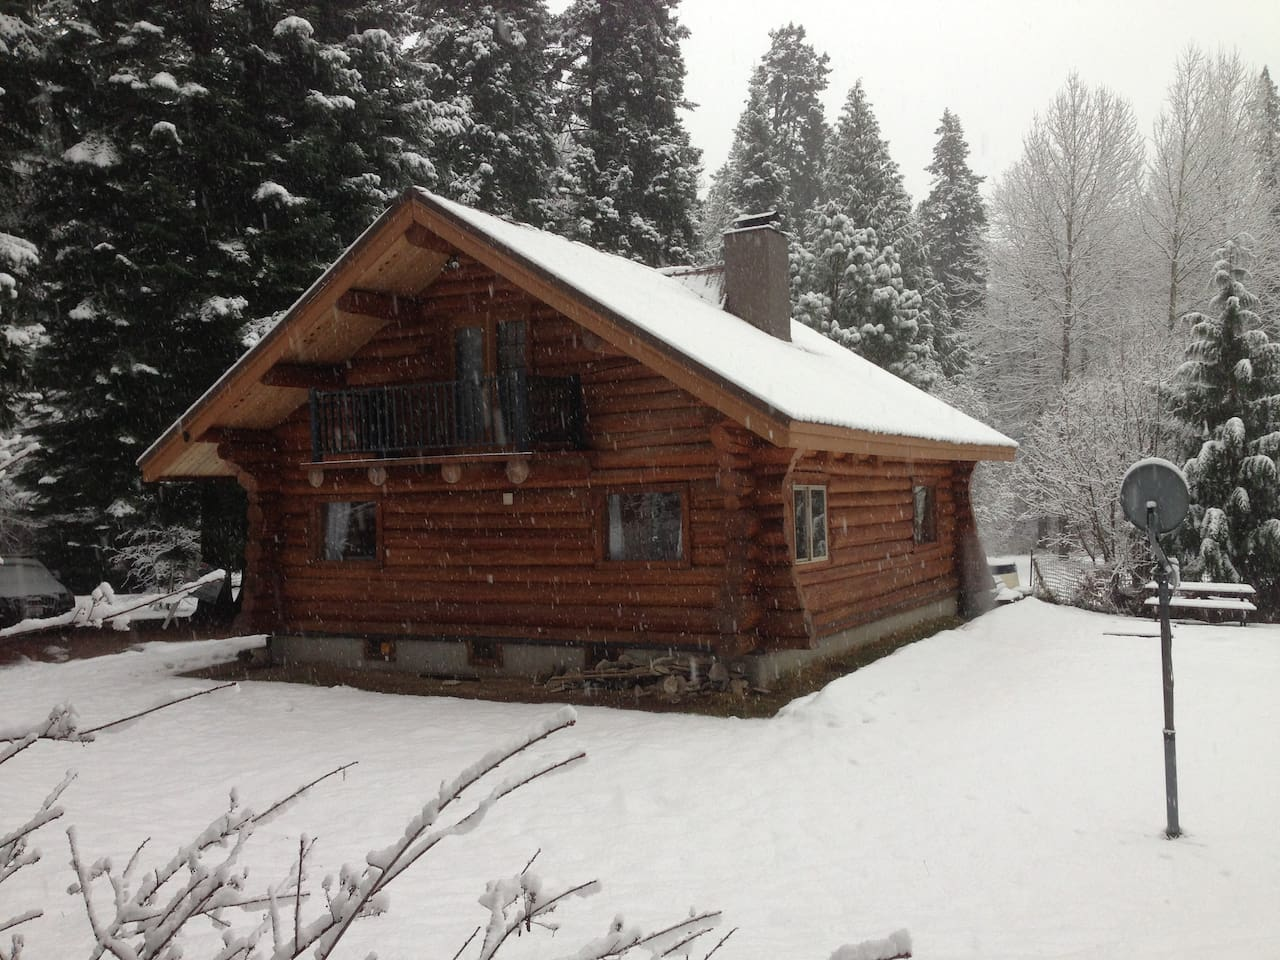 right curbed far photo to rent frames rentals vacation available cabin in frame via california an yosemite meadow for stay a best now washington cabins